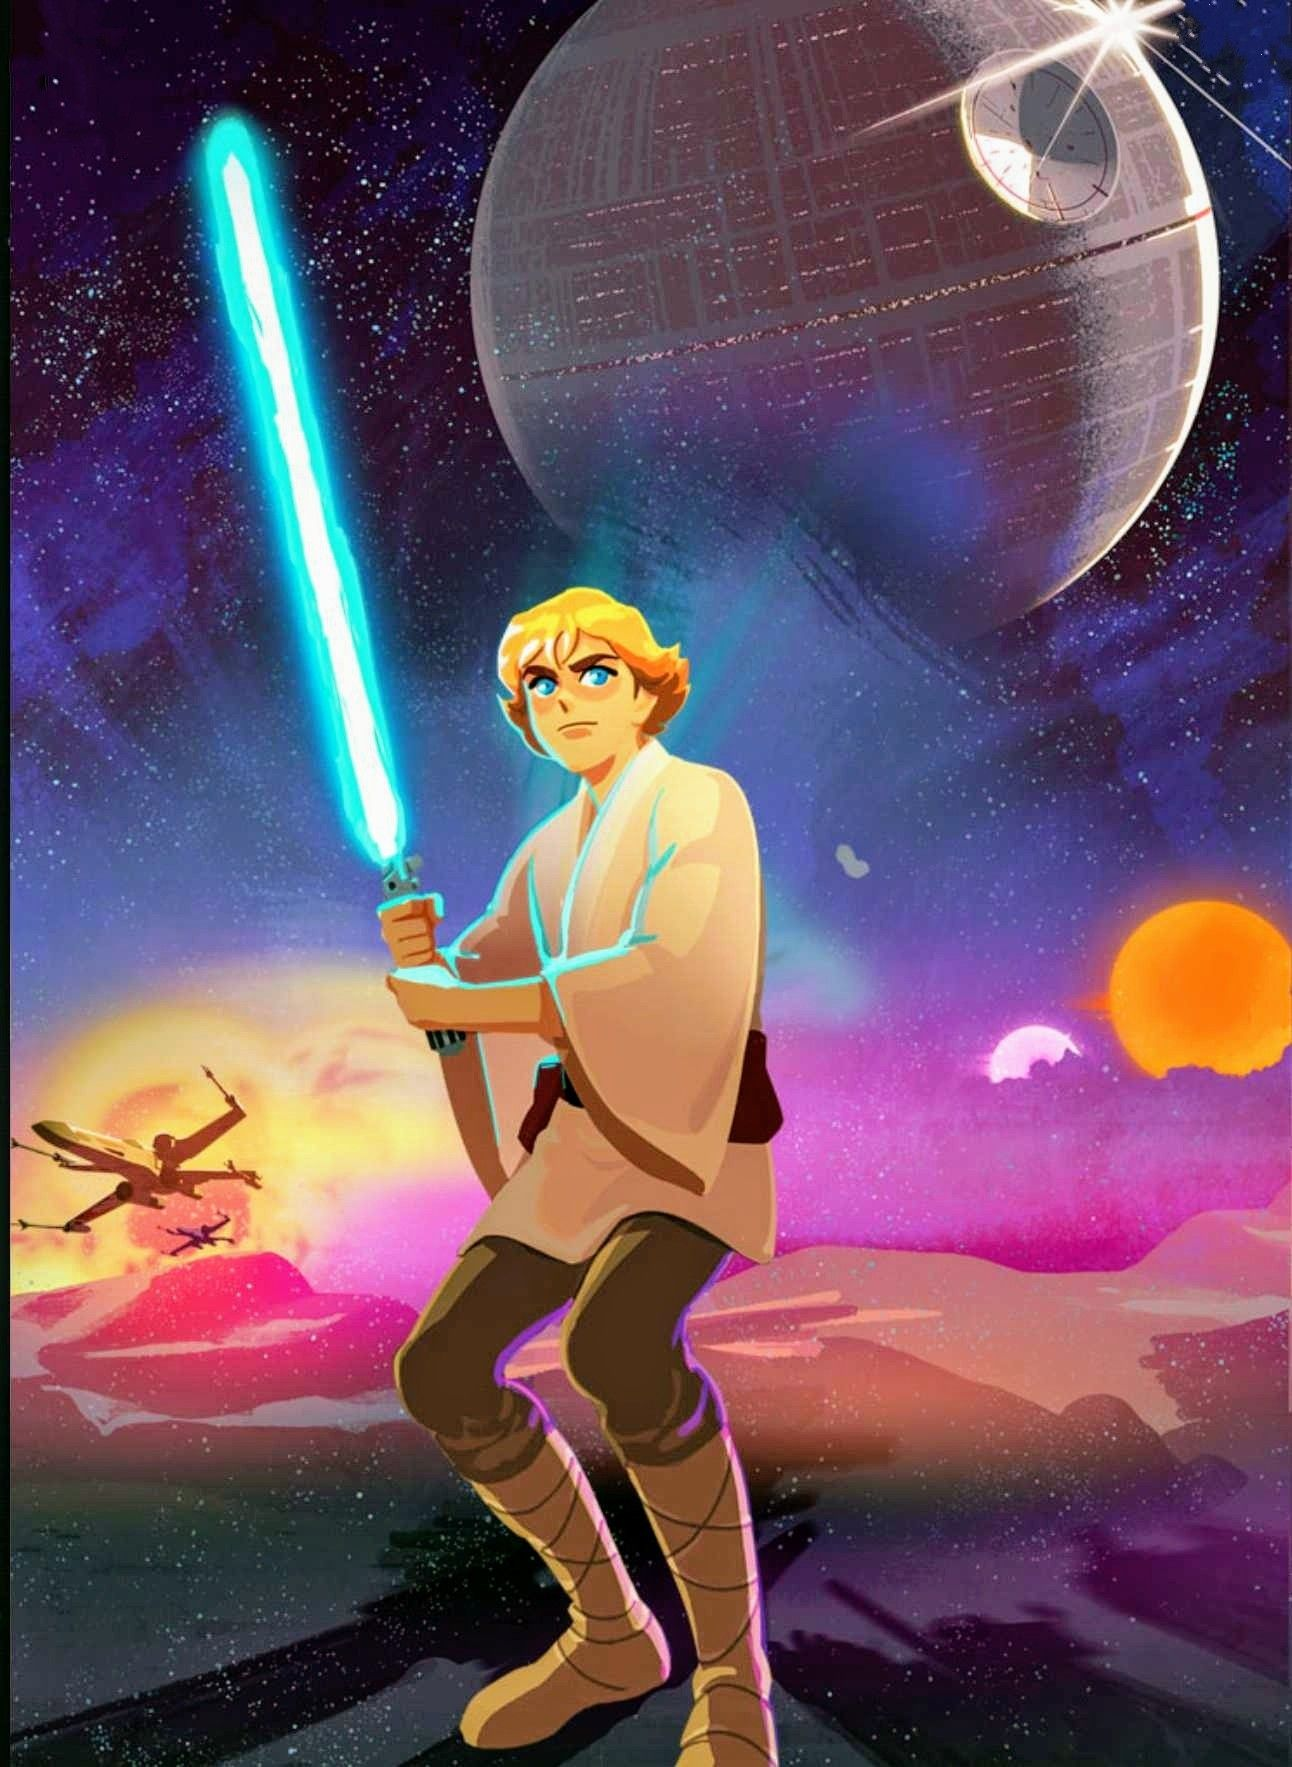 Cool Looking Artwork From The New Star Wars Animated Series Galaxy Of Adventures They Re Really Short Clips Star Wars Images Star Wars Art Star Wars Wallpaper